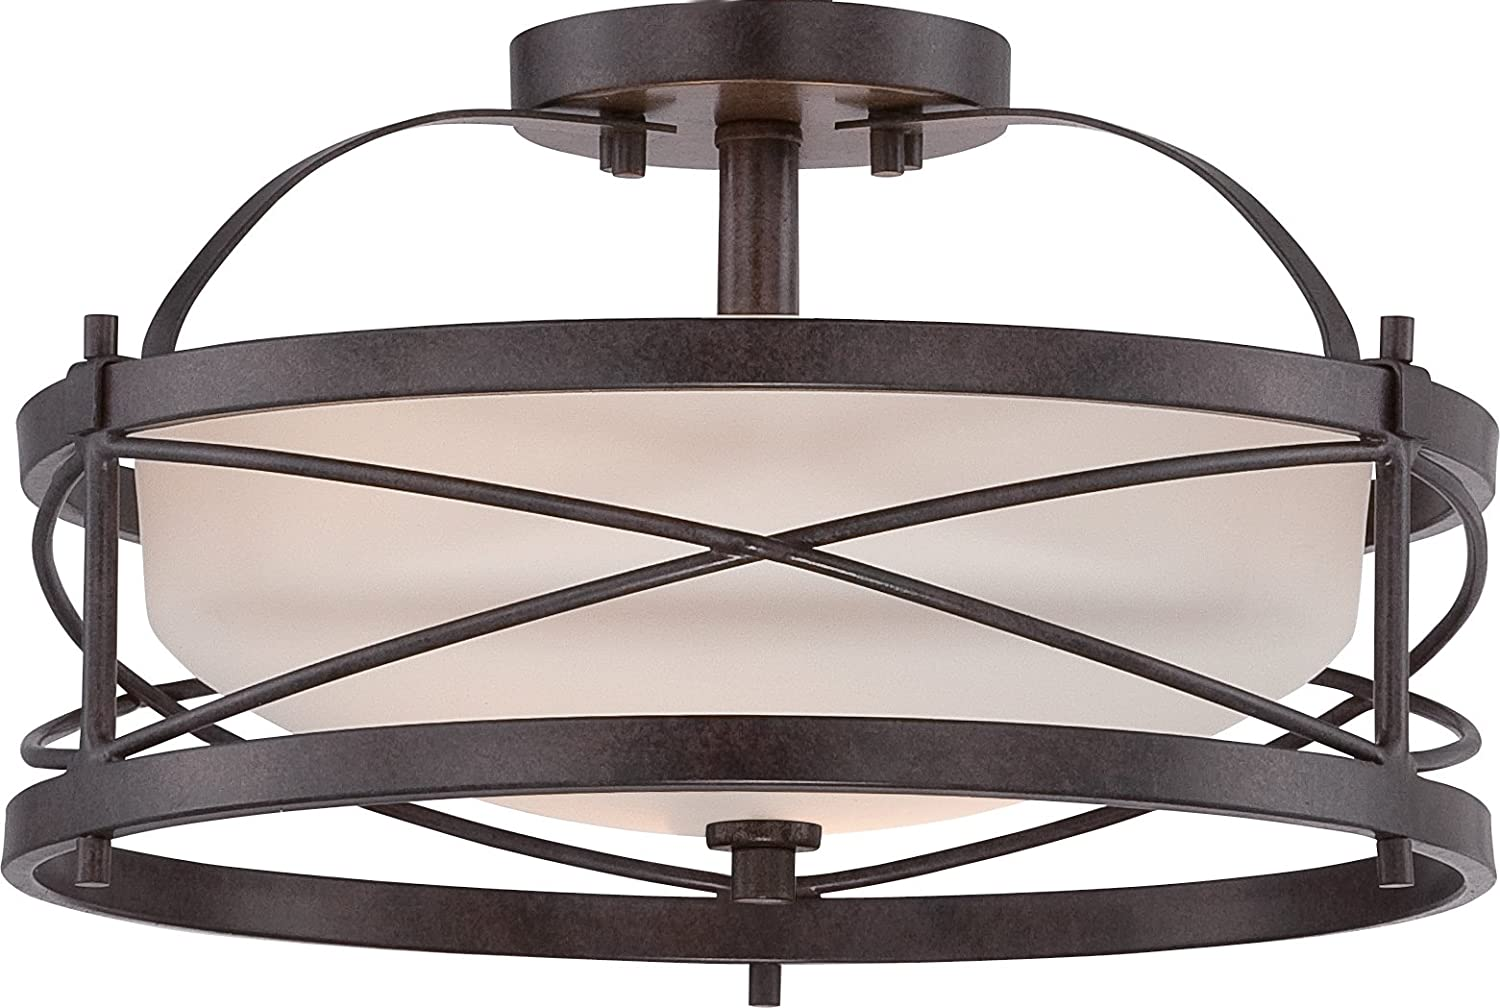 "Nuvo Lighting 60/5335 Two Light Semi Flush Mount, 14"" W x 8.25"" H, Bronze/Dark"